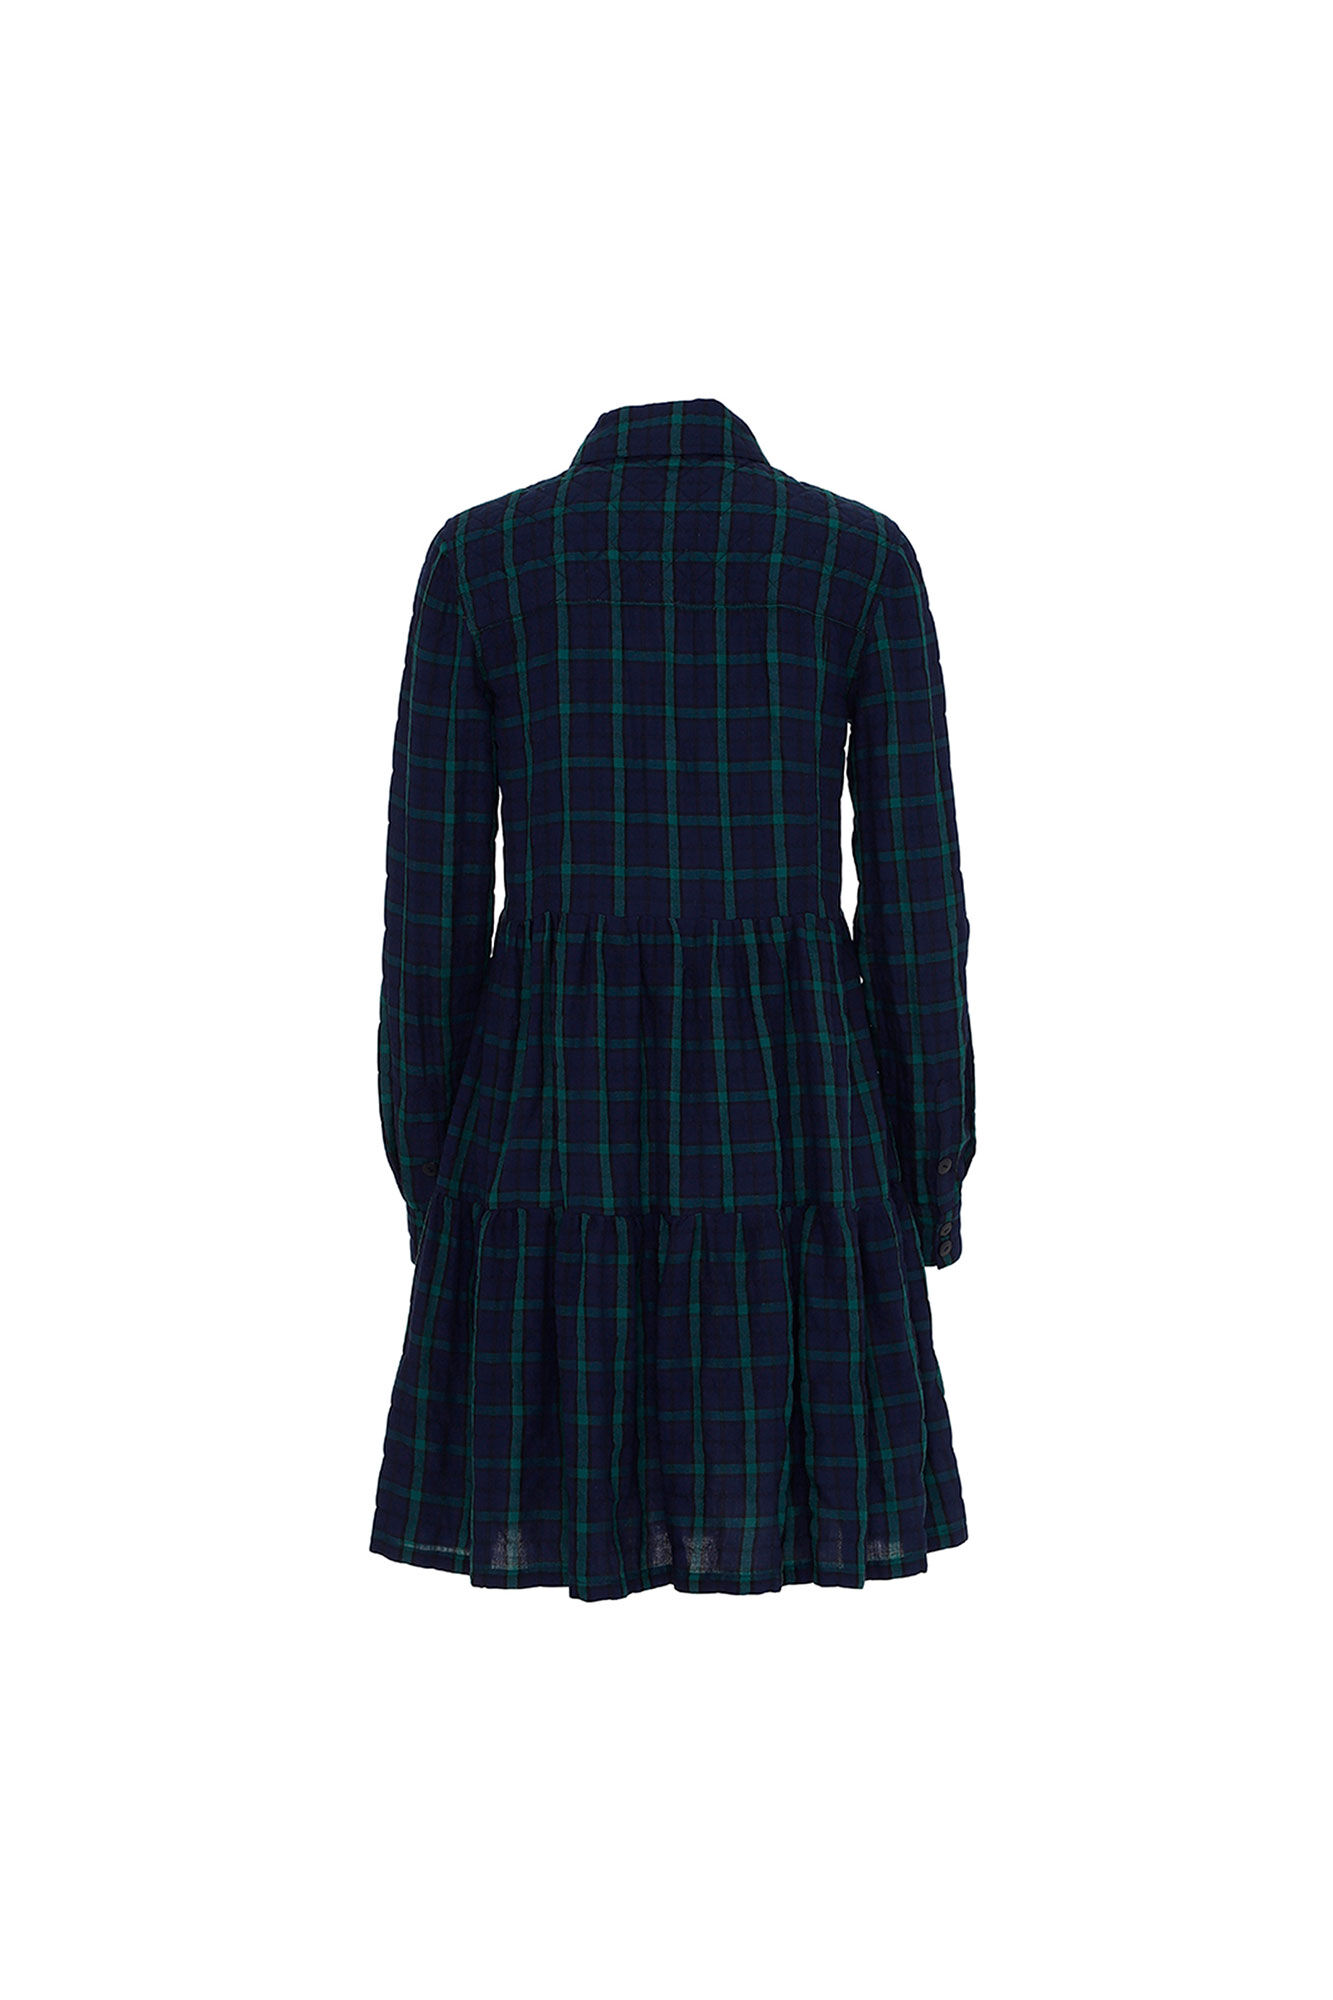 Sabrina dress 3361623, TARTAN